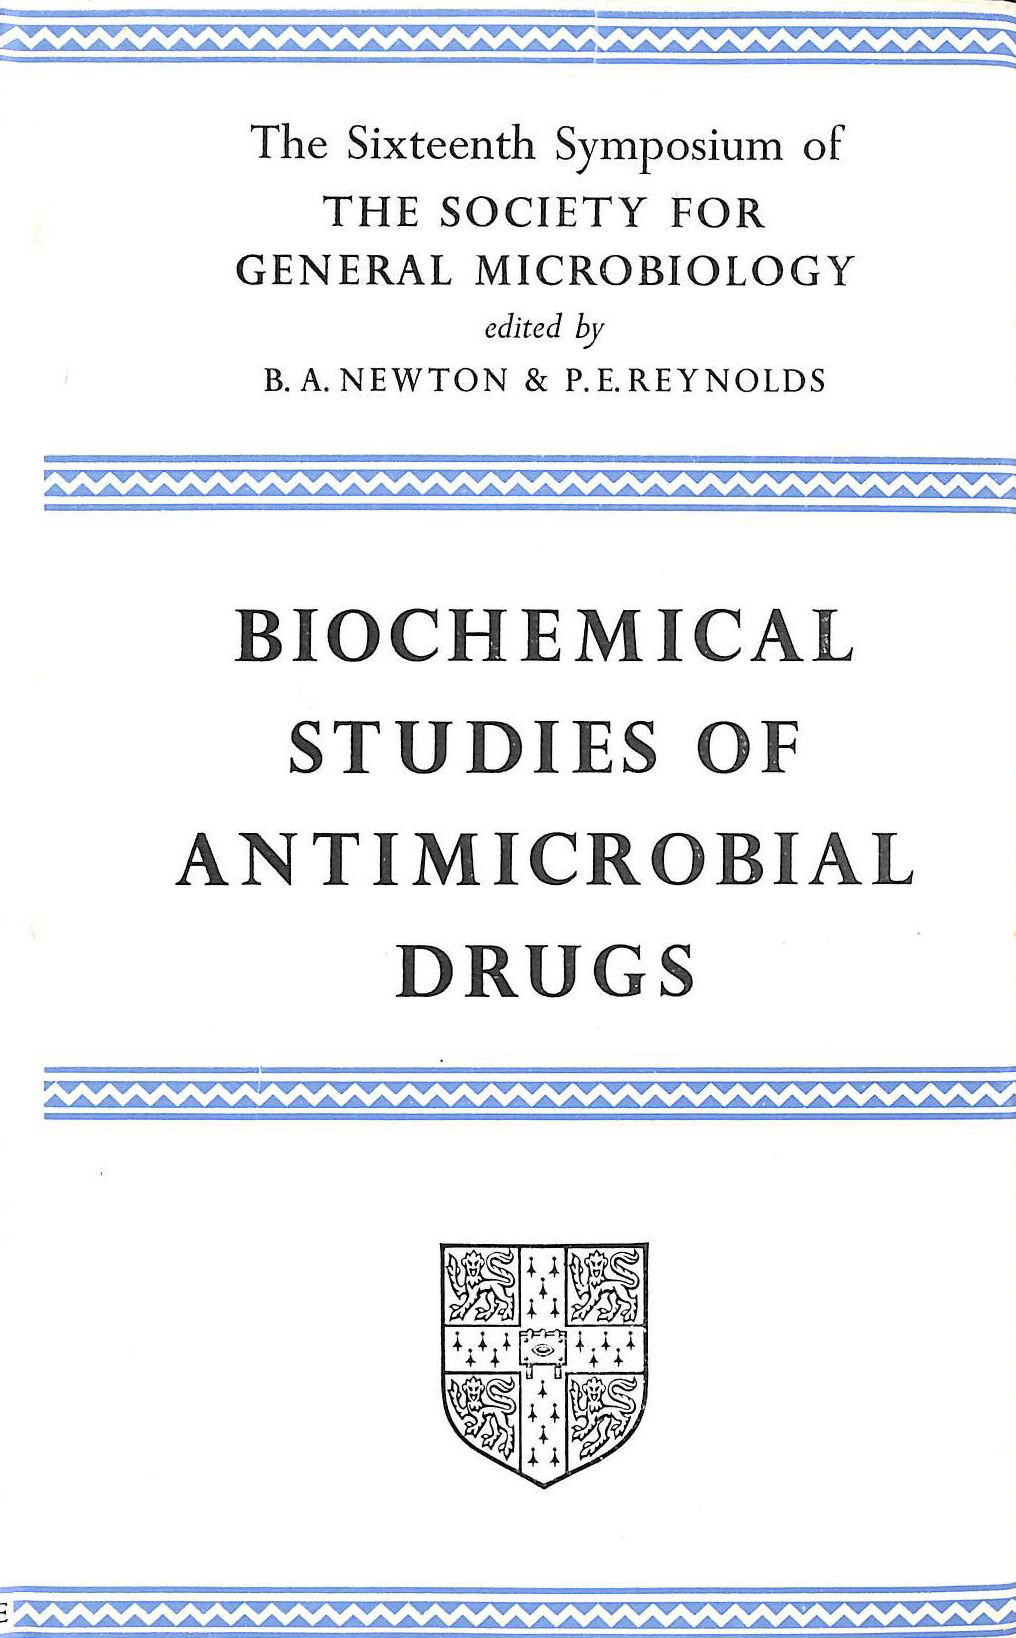 Image for Biochemical Studies of Antimicrobial Drugs: Sixteenth Symposium of the Society for General Microbiology Held at the Royal Institution, London April 1966